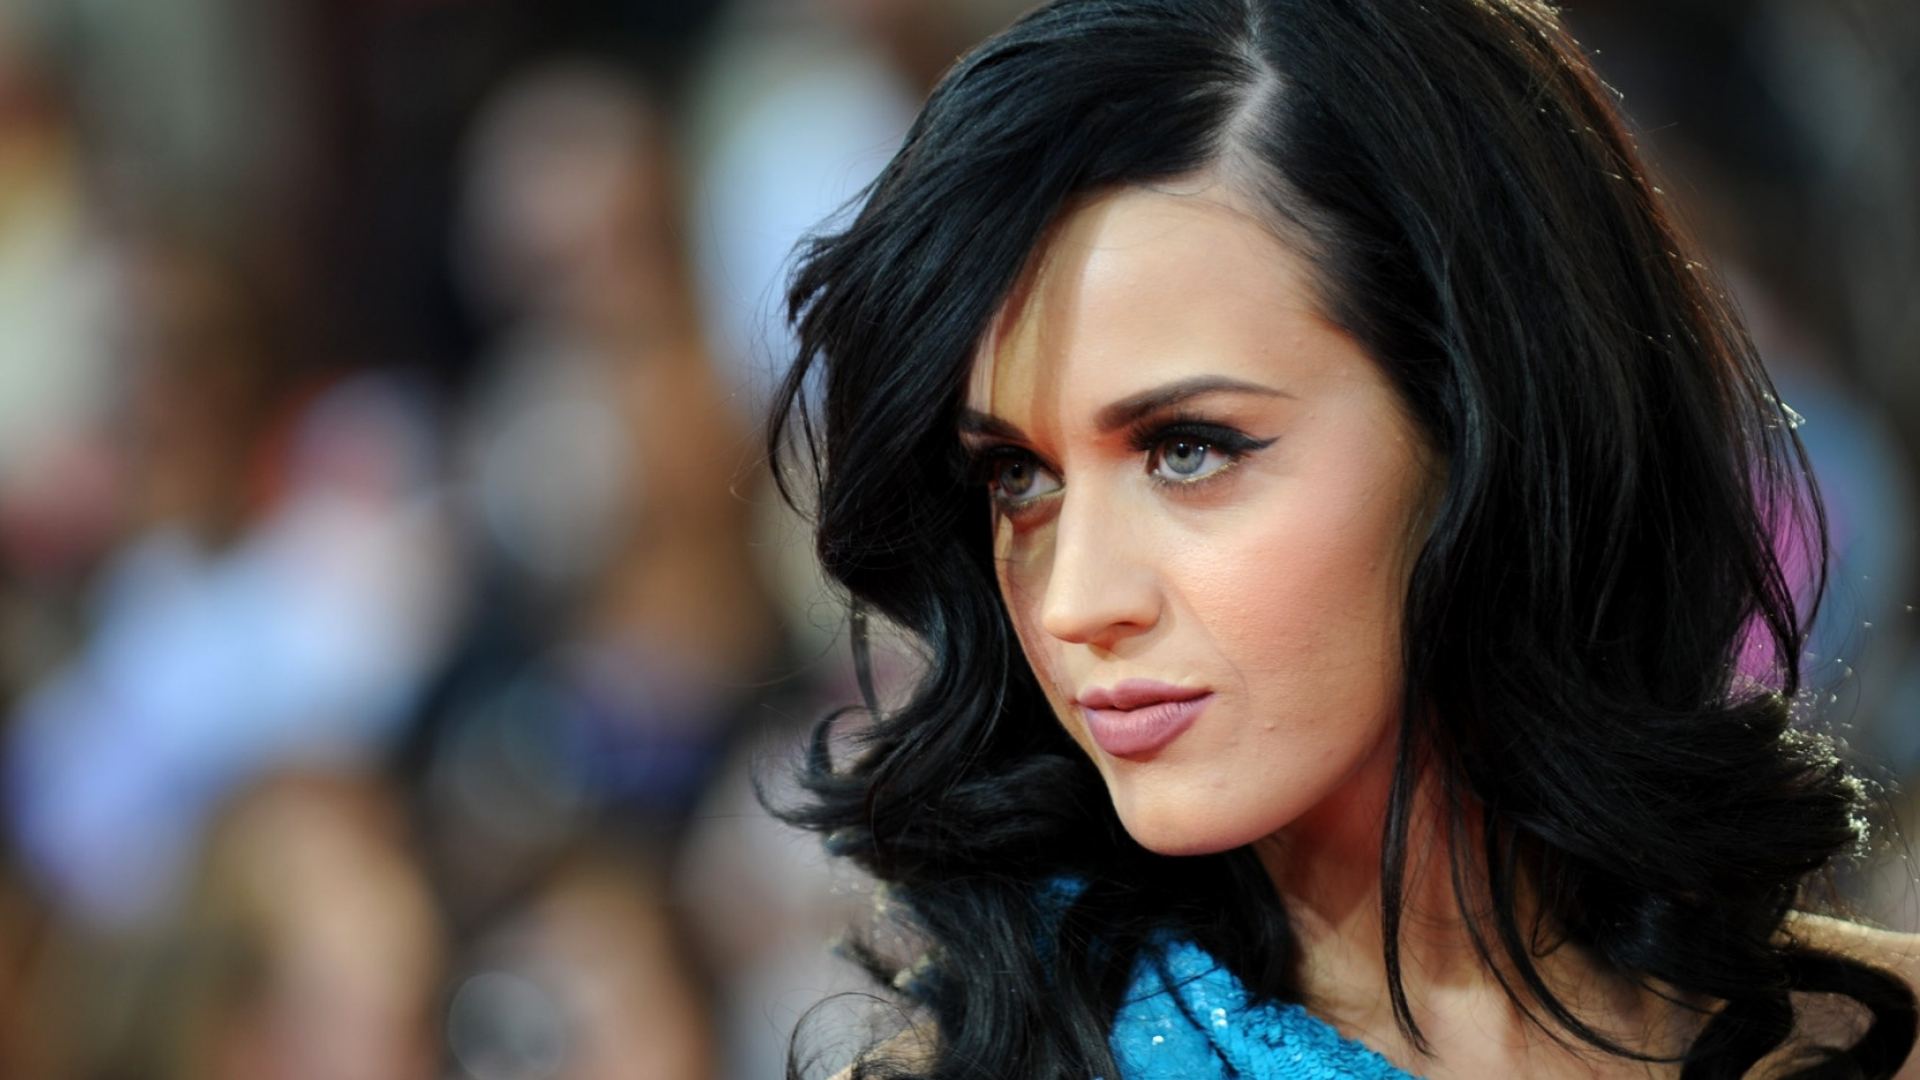 katy-perry-photos-wallpaper-fk0277et.jpg